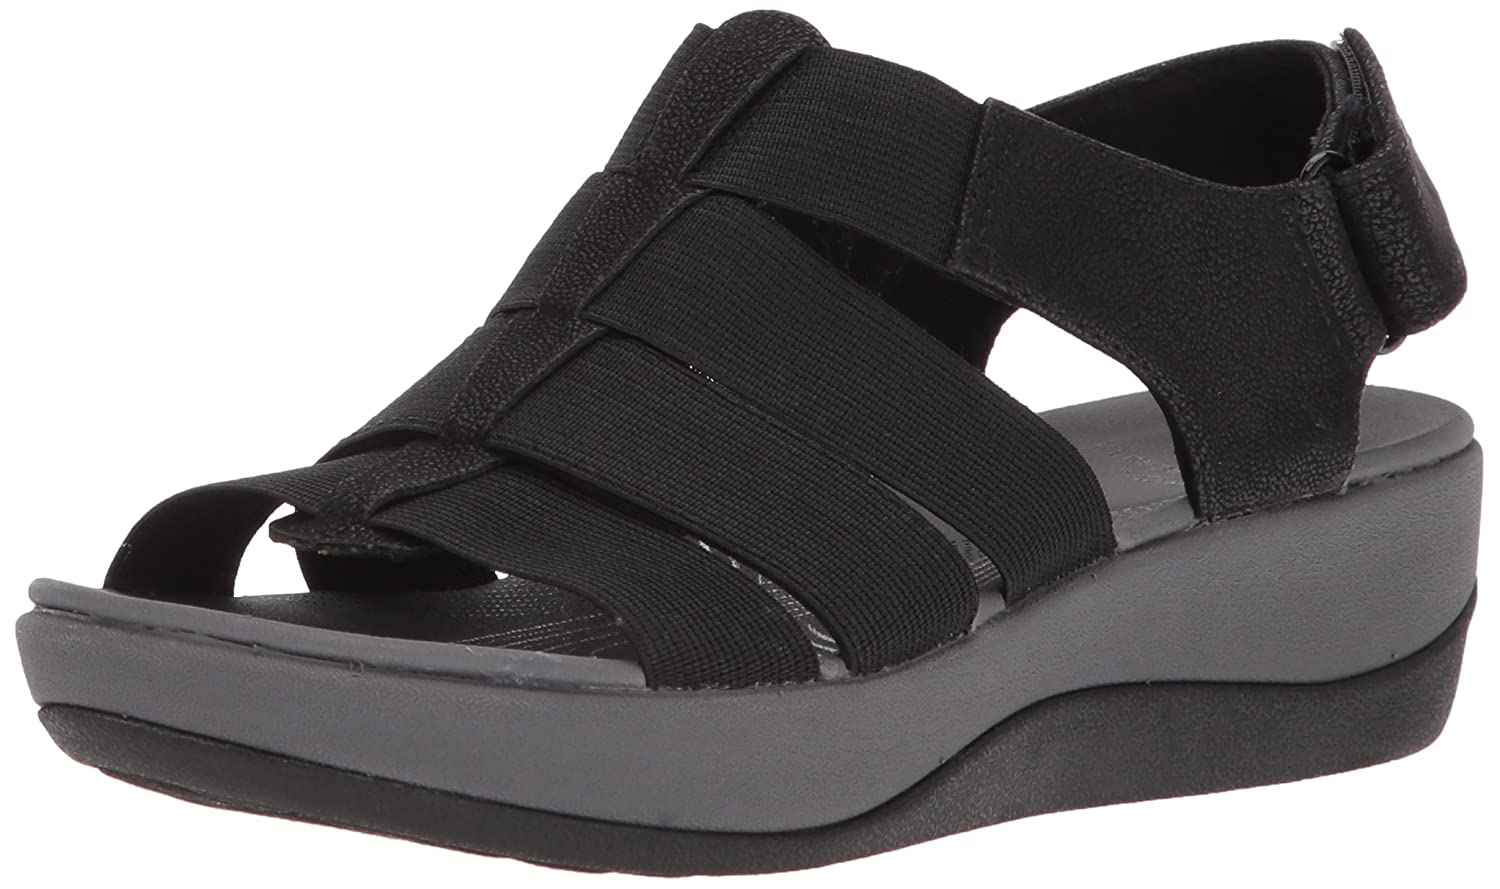 Black elastic fabric Clarks Women's Arla Shaylie Sandals